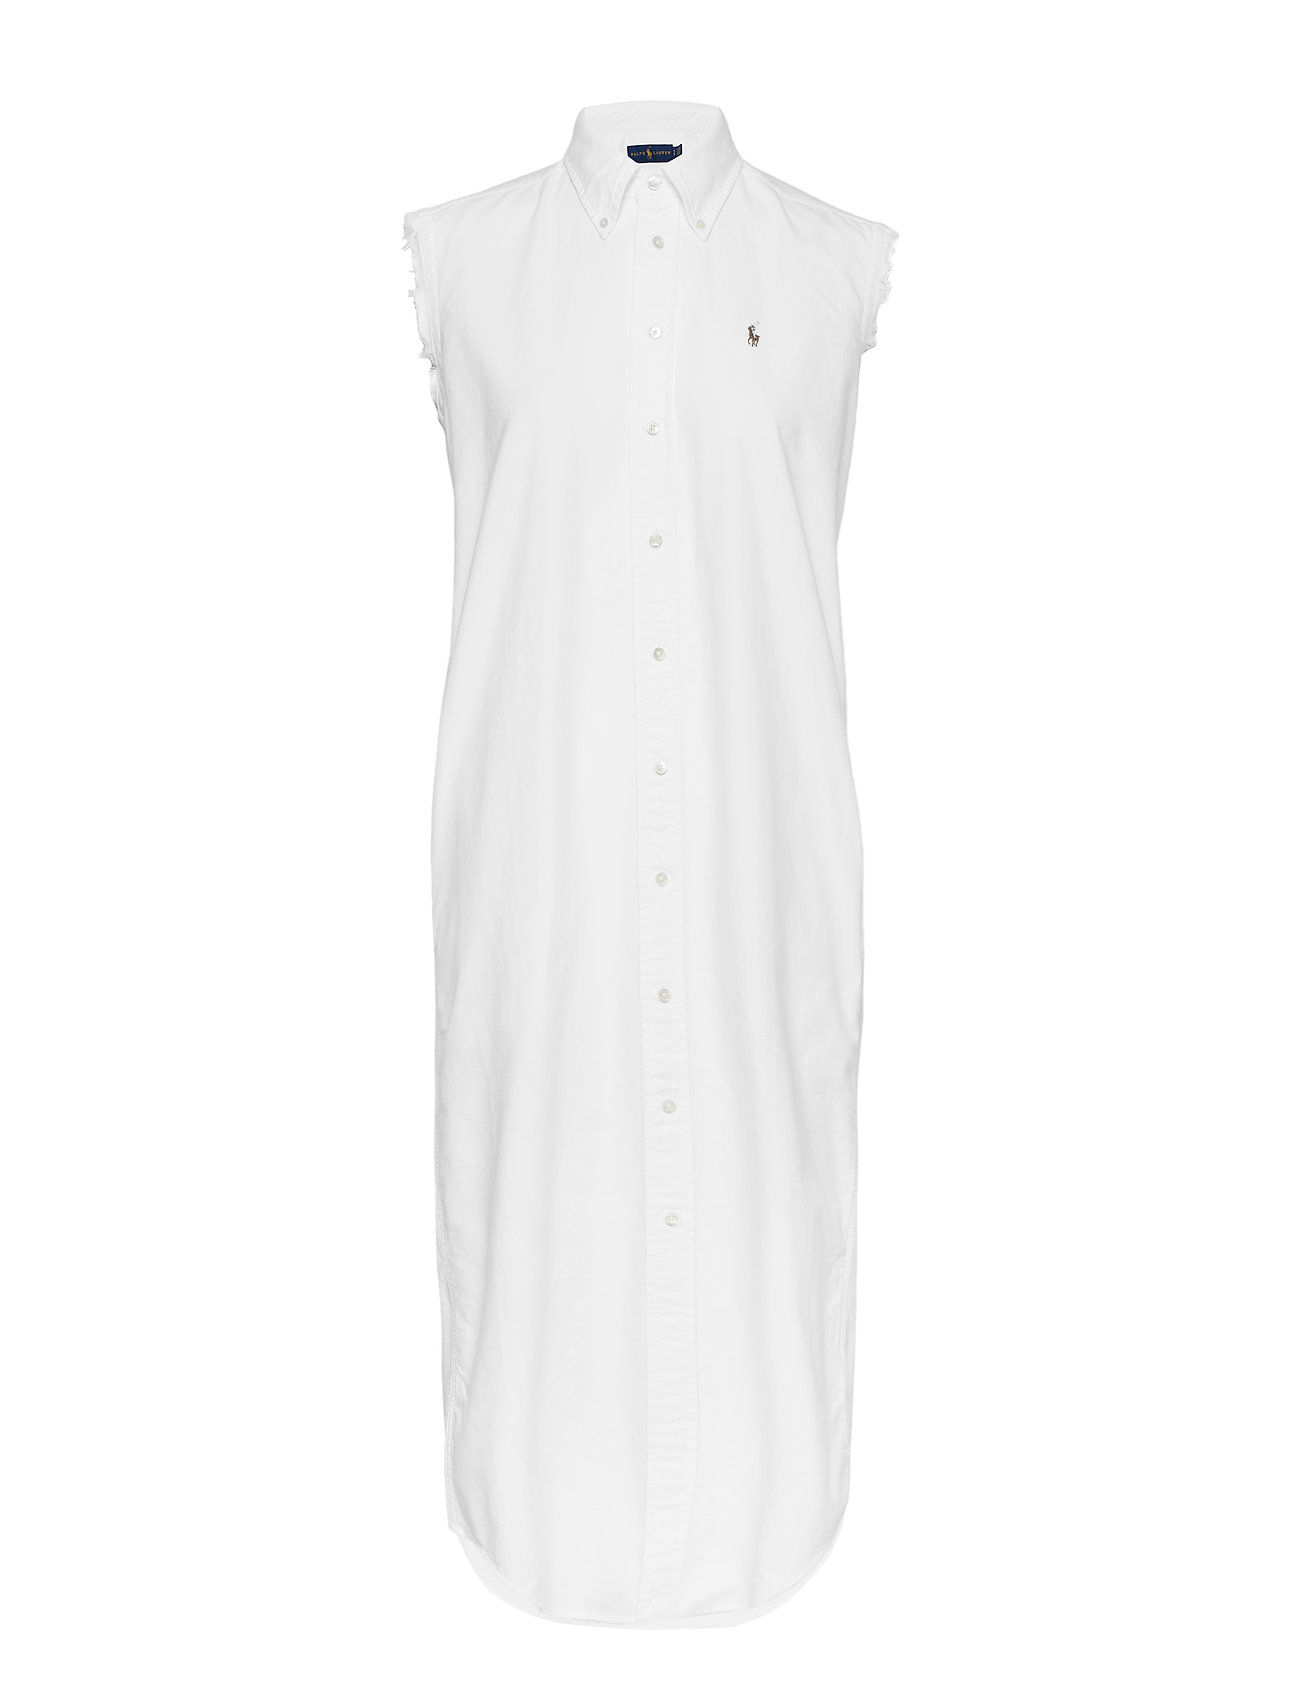 Polo Ralph Lauren Sleeveless Oxford Shirtdress